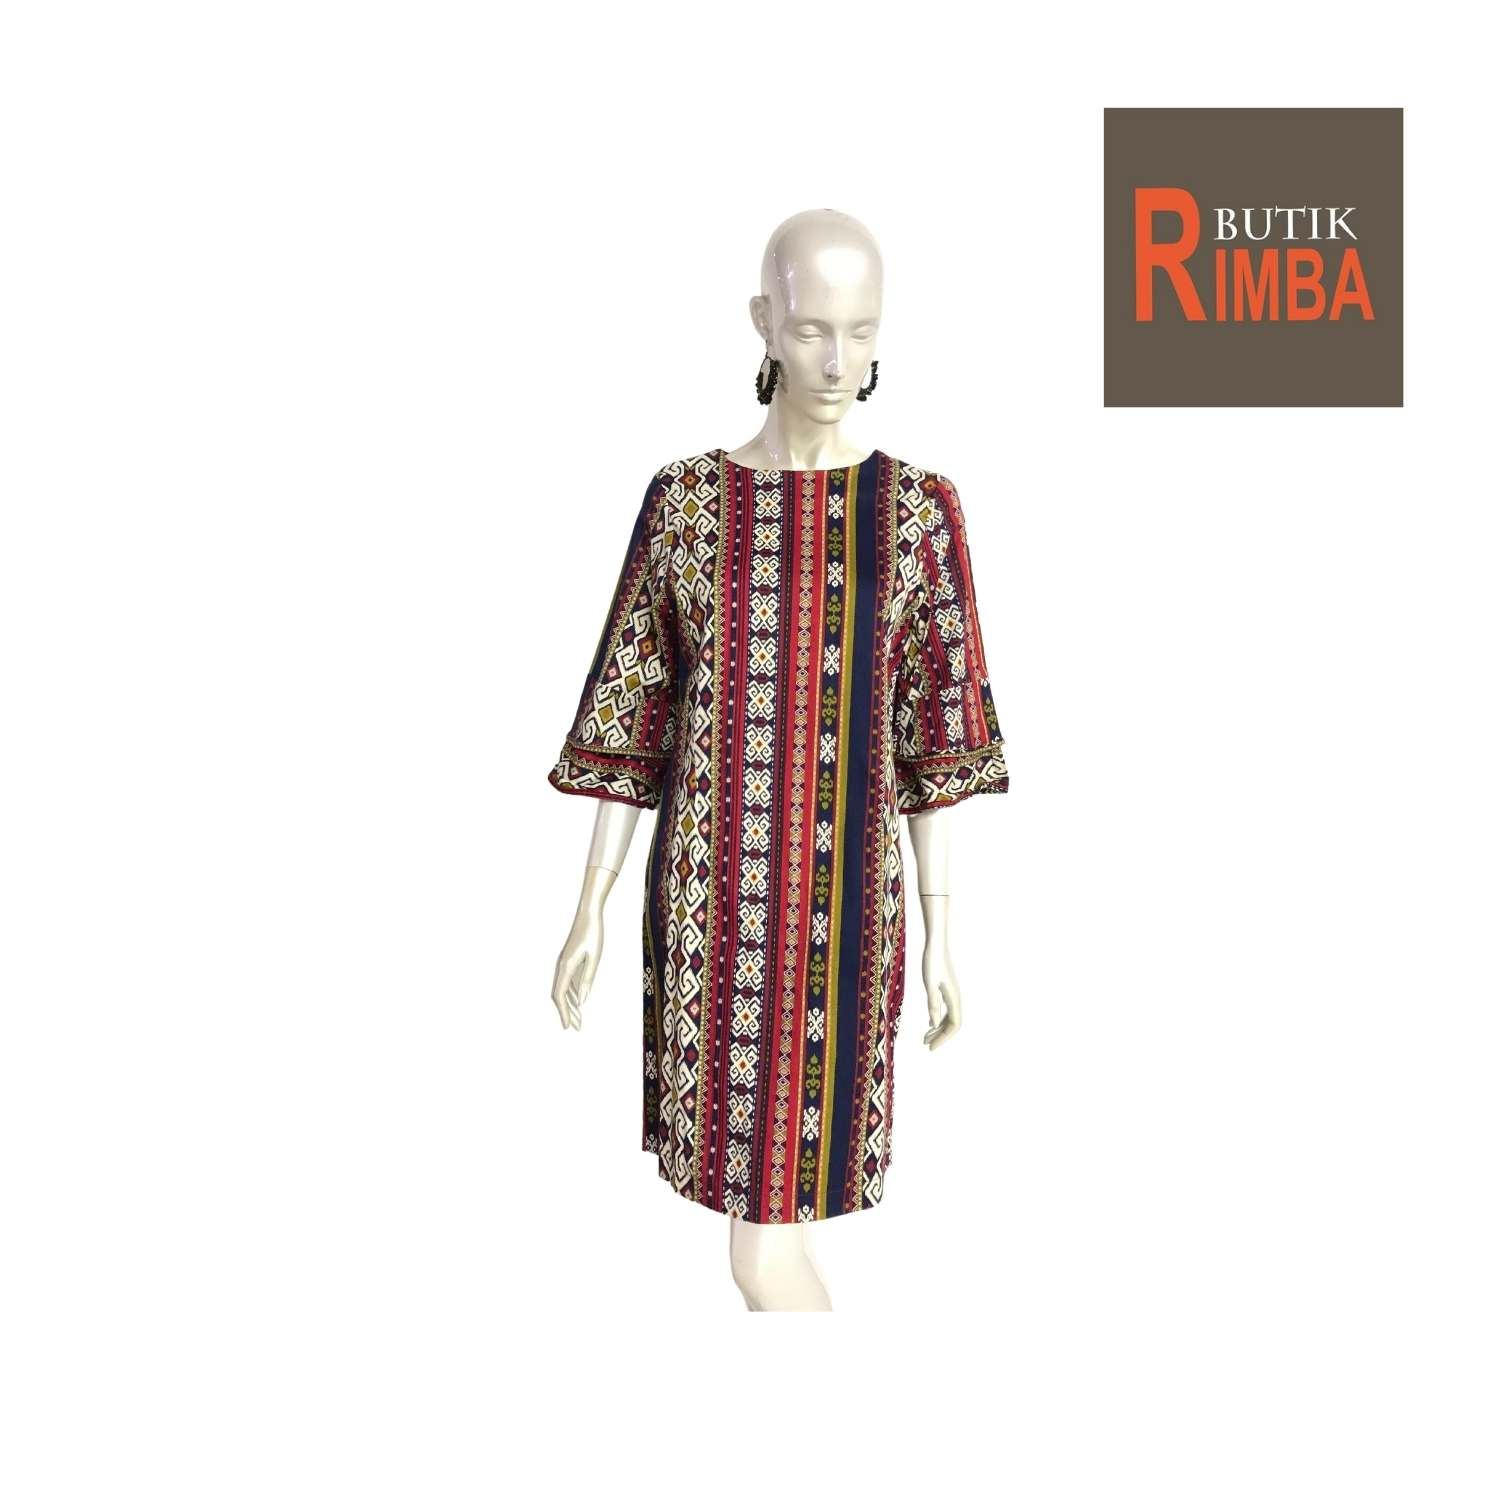 MODERN DRESS BATIK COTTON STRETCHABLE KNEE LENGTH FREE SIZE FOR FASHIONABLE WOMEN IN MIND 07